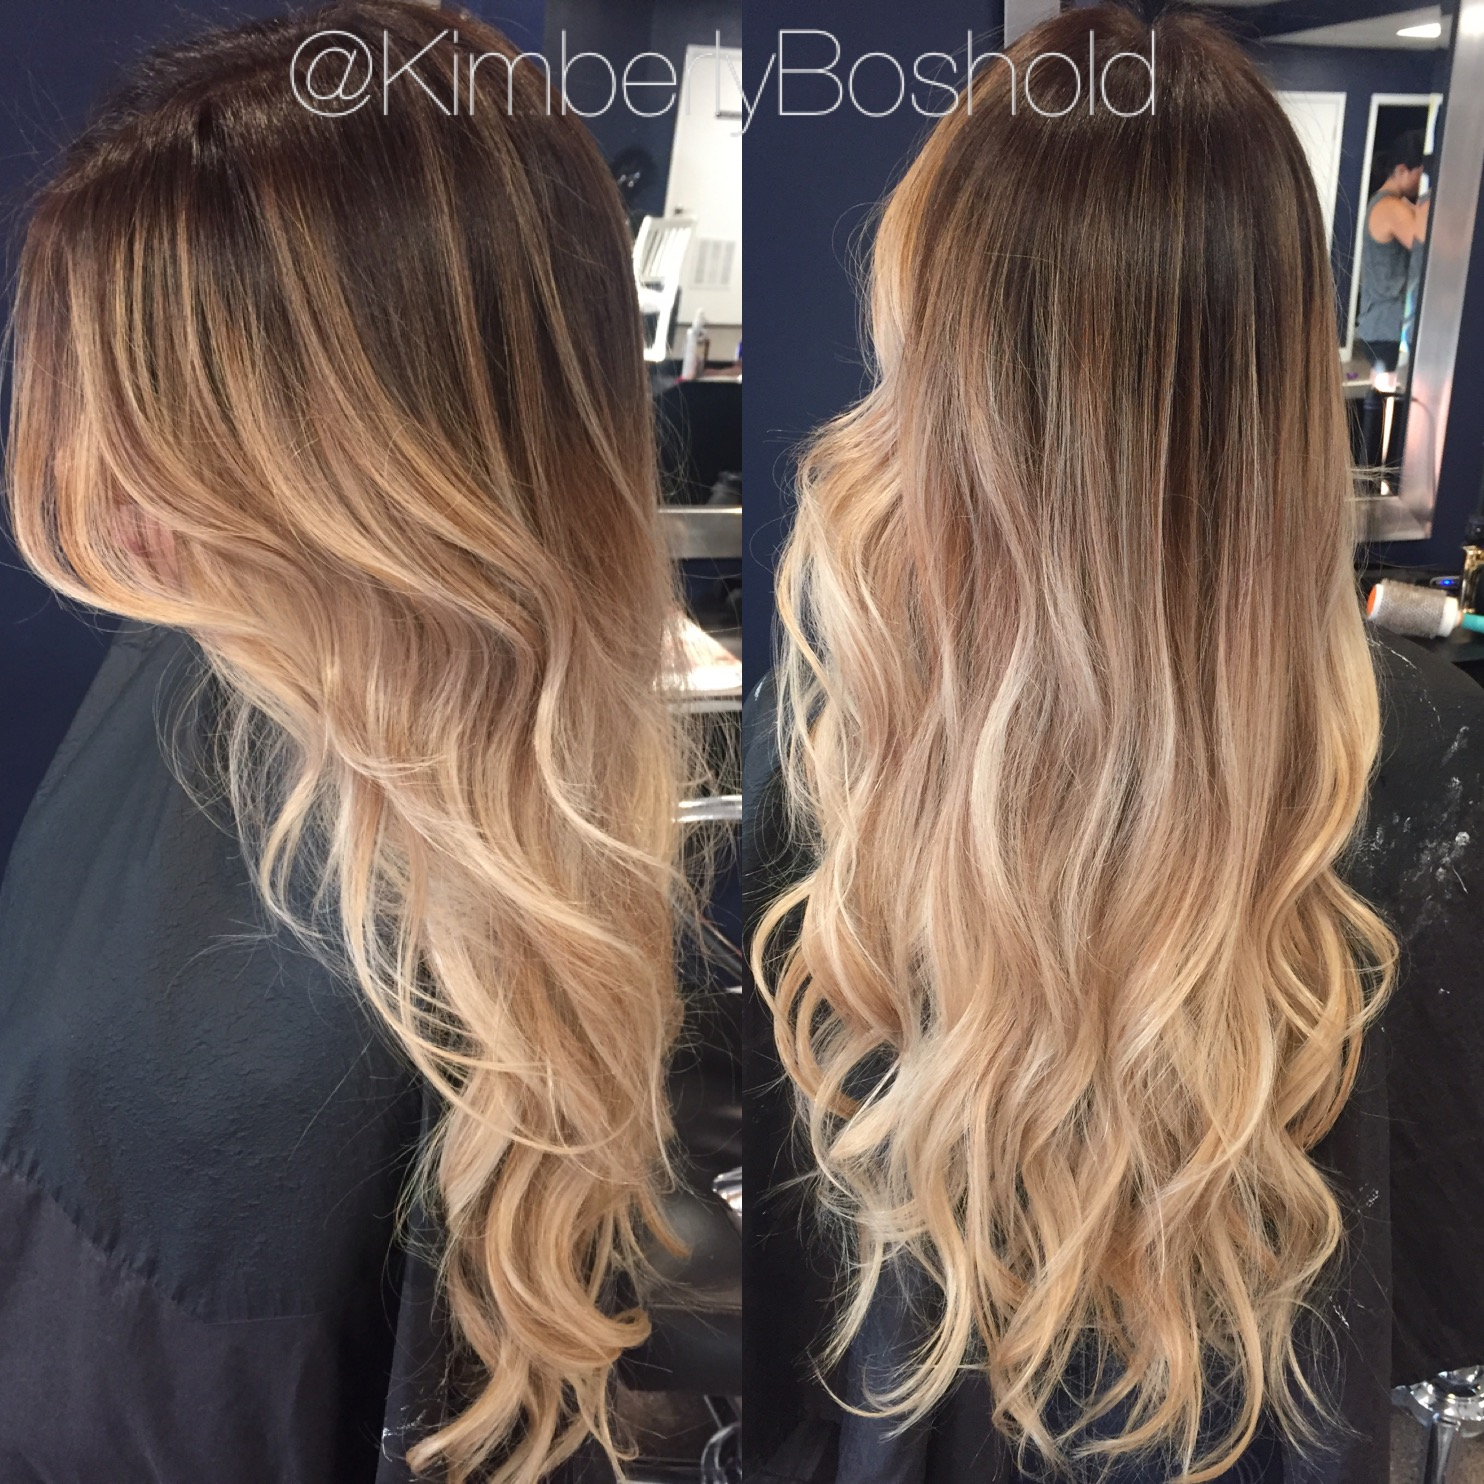 This took a few hours to create but it was well worth the wait. I started with a neutral brown base and melted it down into a beige blonde balayage.